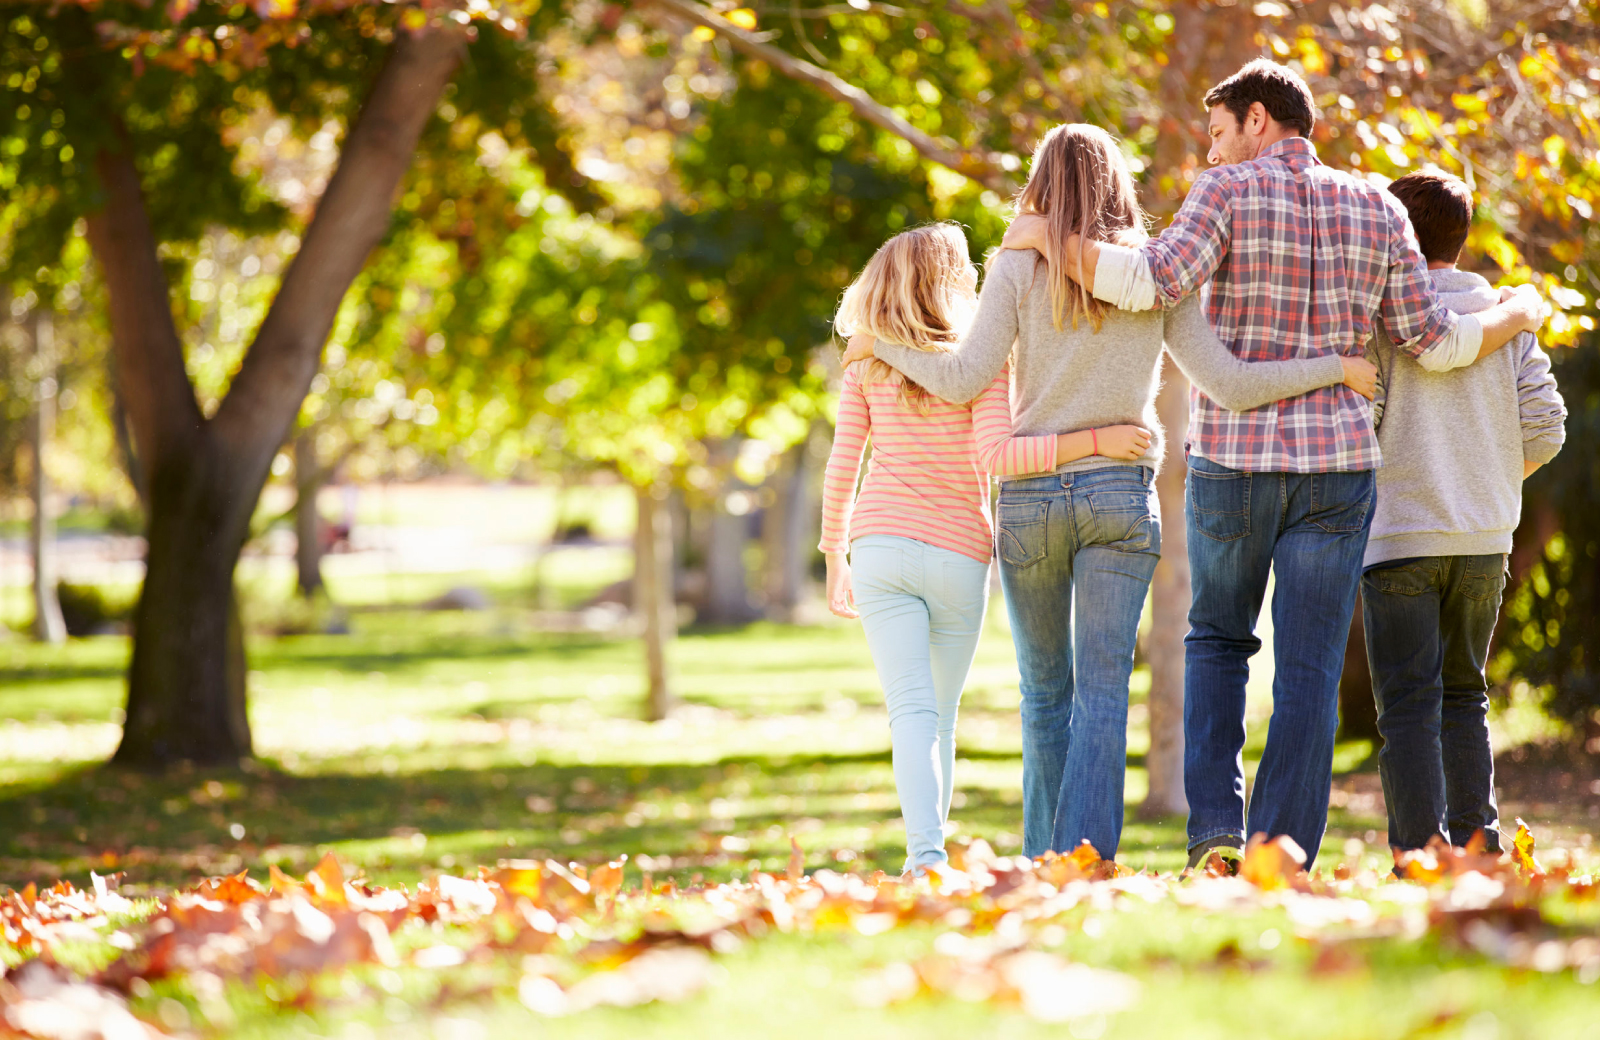 Family Activities In Norwalk - The Waypointe Apartments